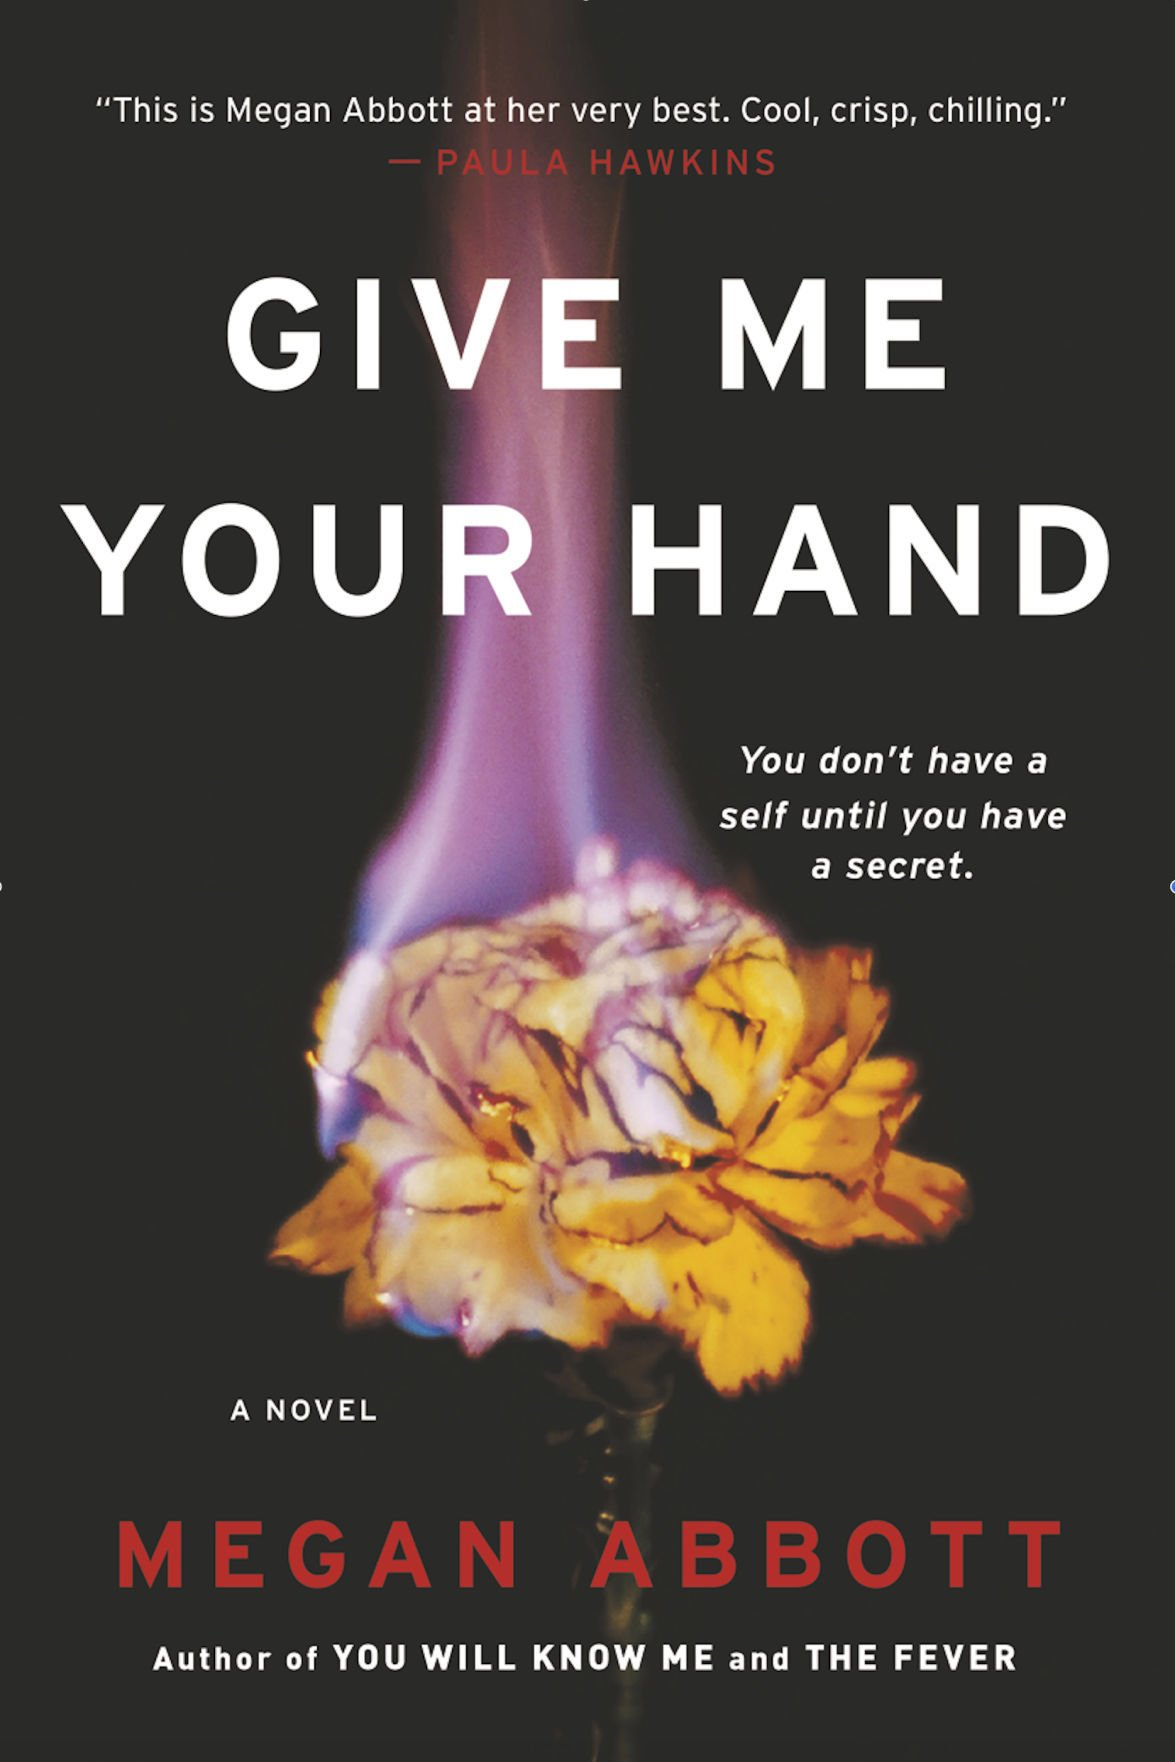 Book Review - Give Me Your Hand